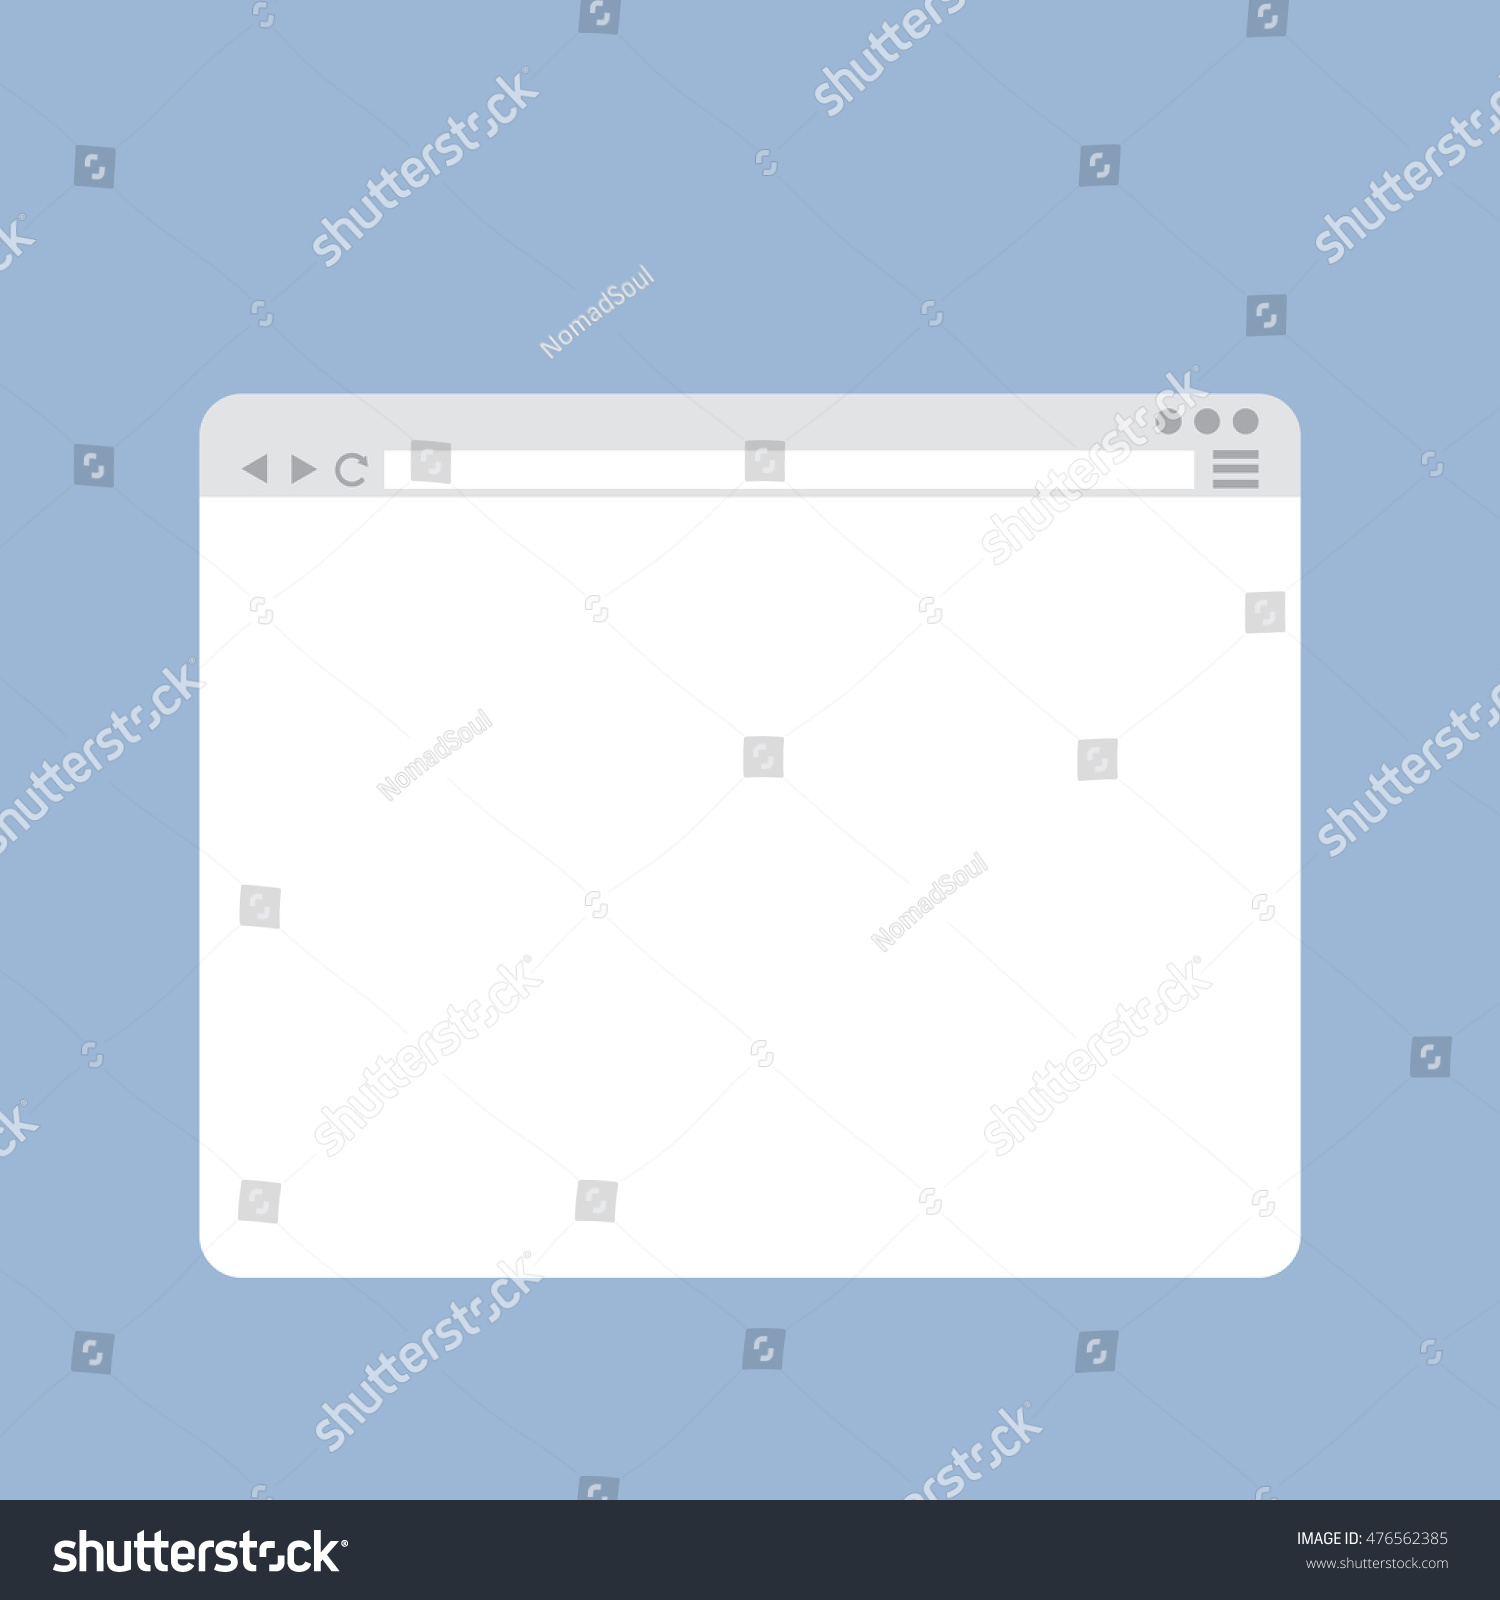 Internet browser window template flat style design stock for Window design template